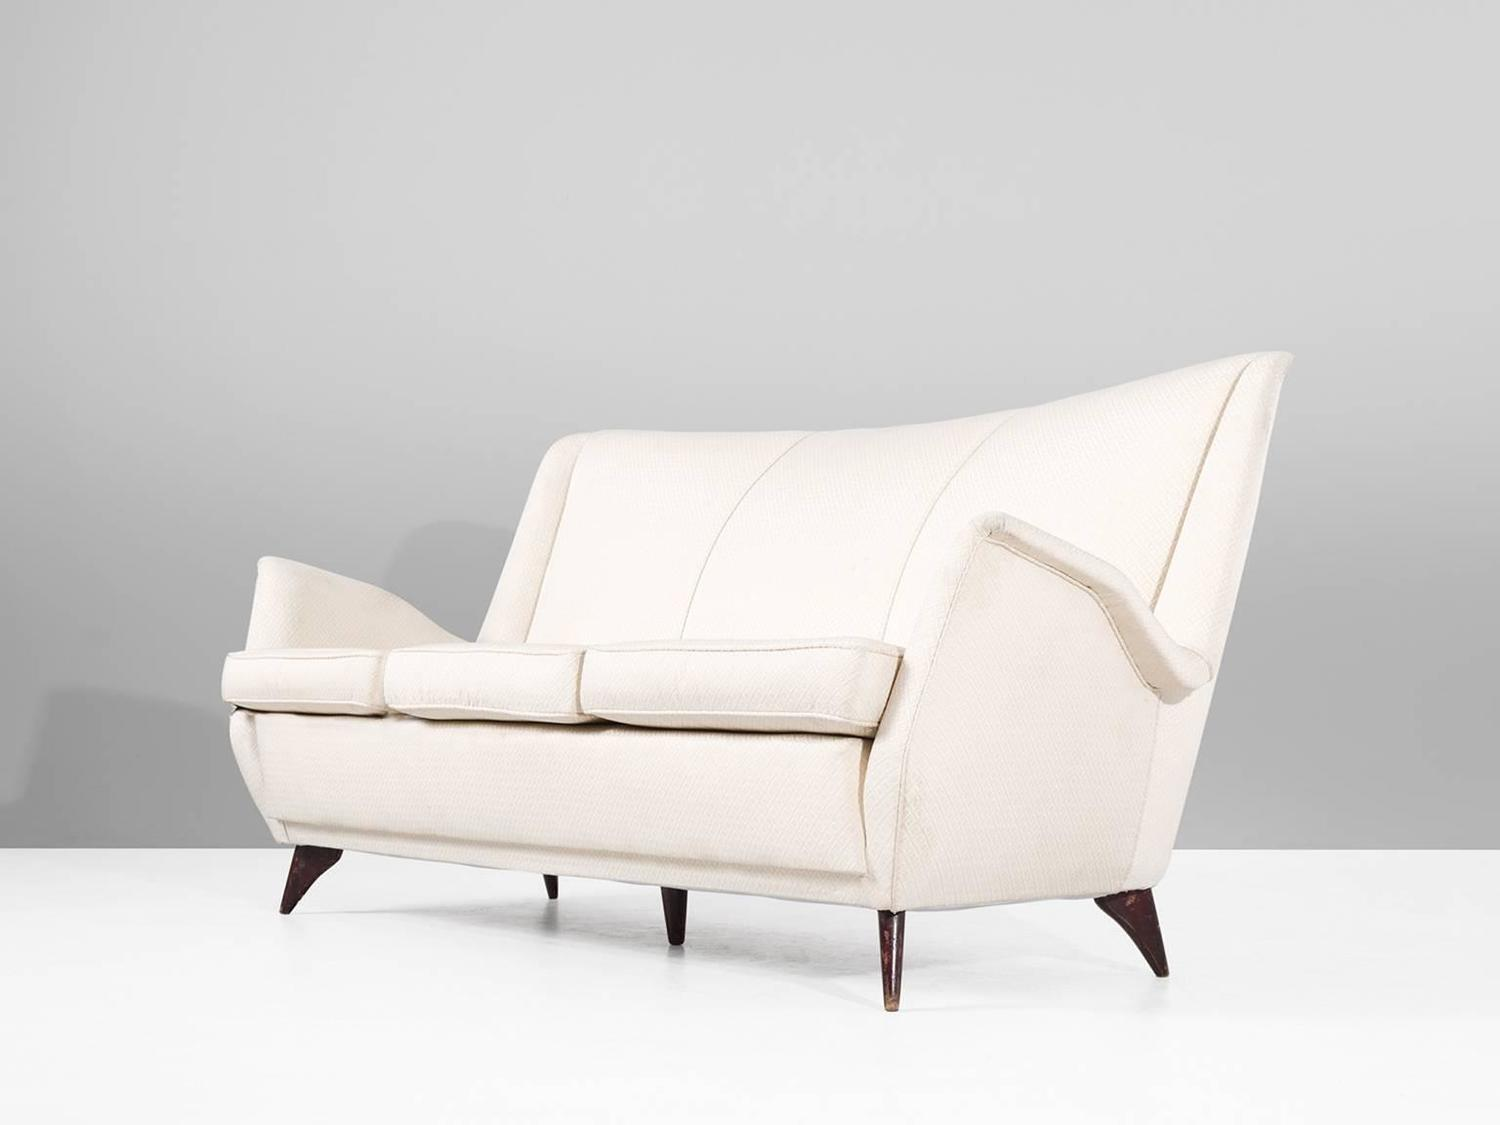 italian three seat sofa in off white fabric for sale at 1stdibs. Black Bedroom Furniture Sets. Home Design Ideas